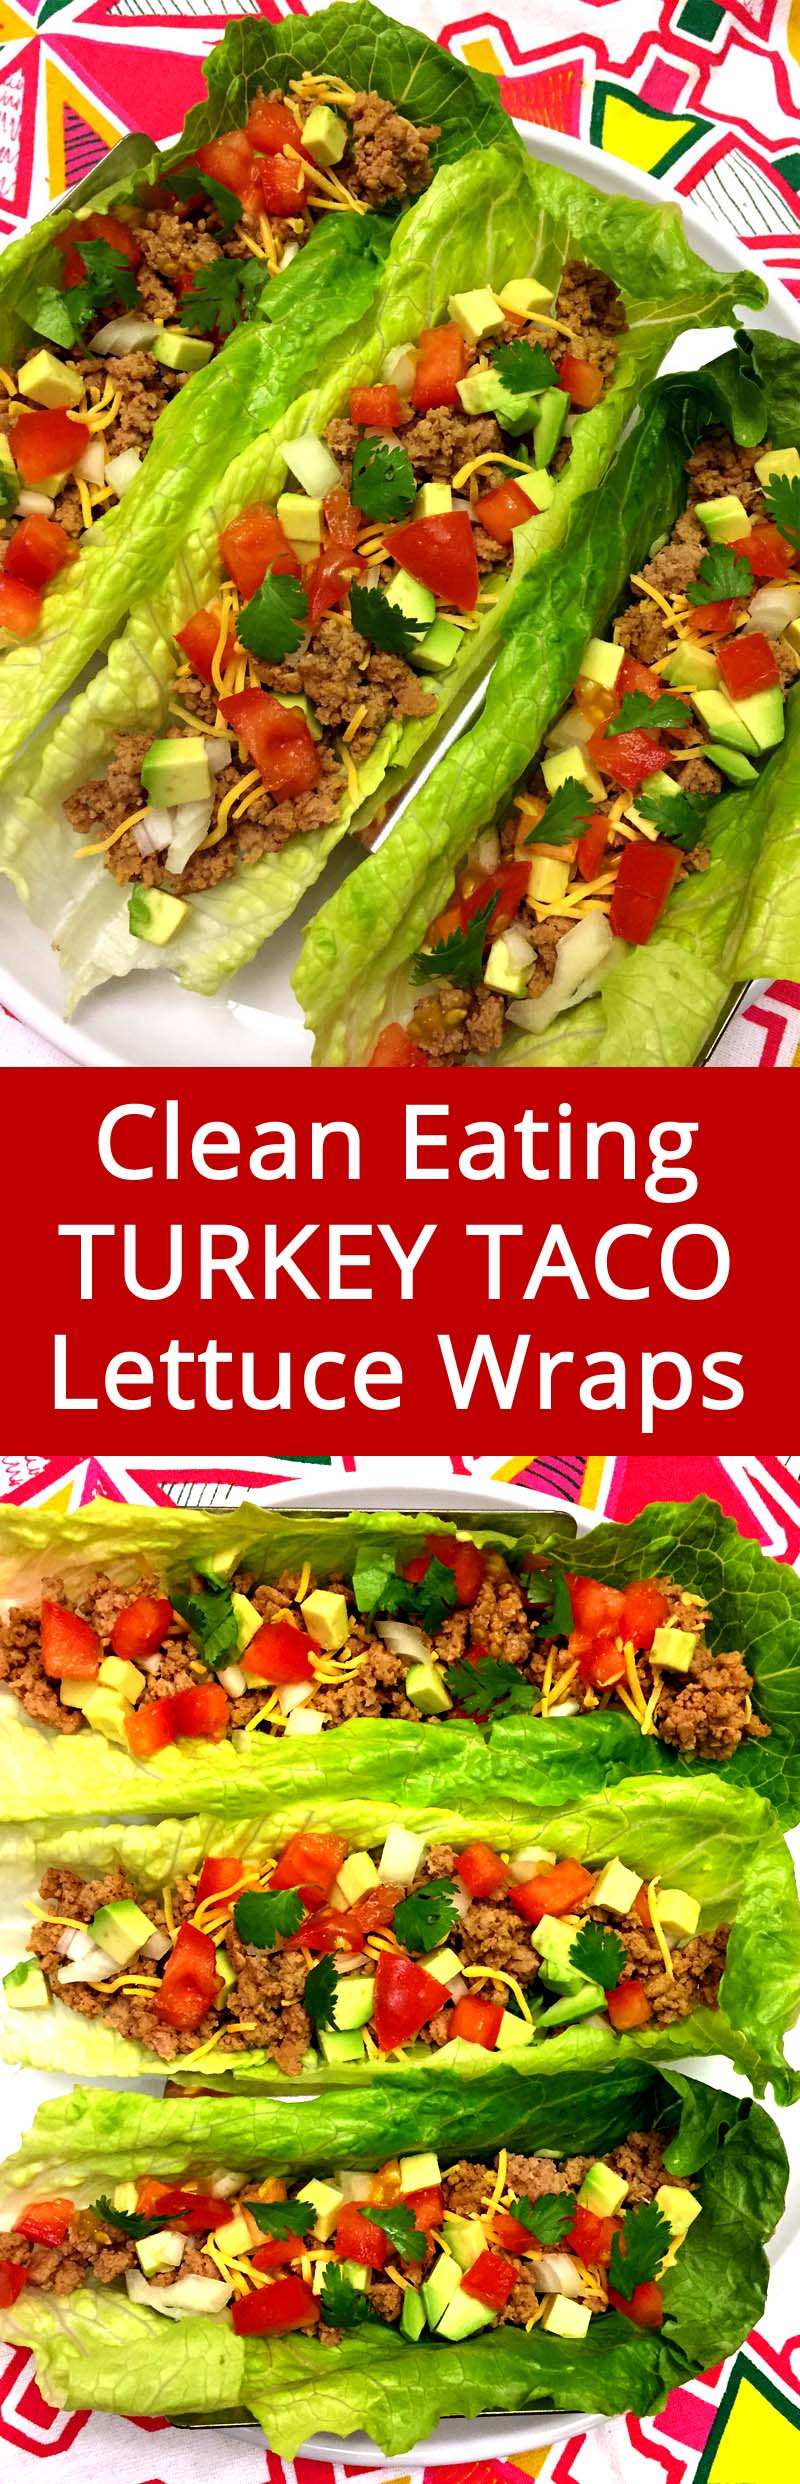 These turkey taco lettuce wraps is my favorite clean eating dinner! Low-carb, gluten-free, keto - truly healthy stuff! SO YUMMY TOO!!!